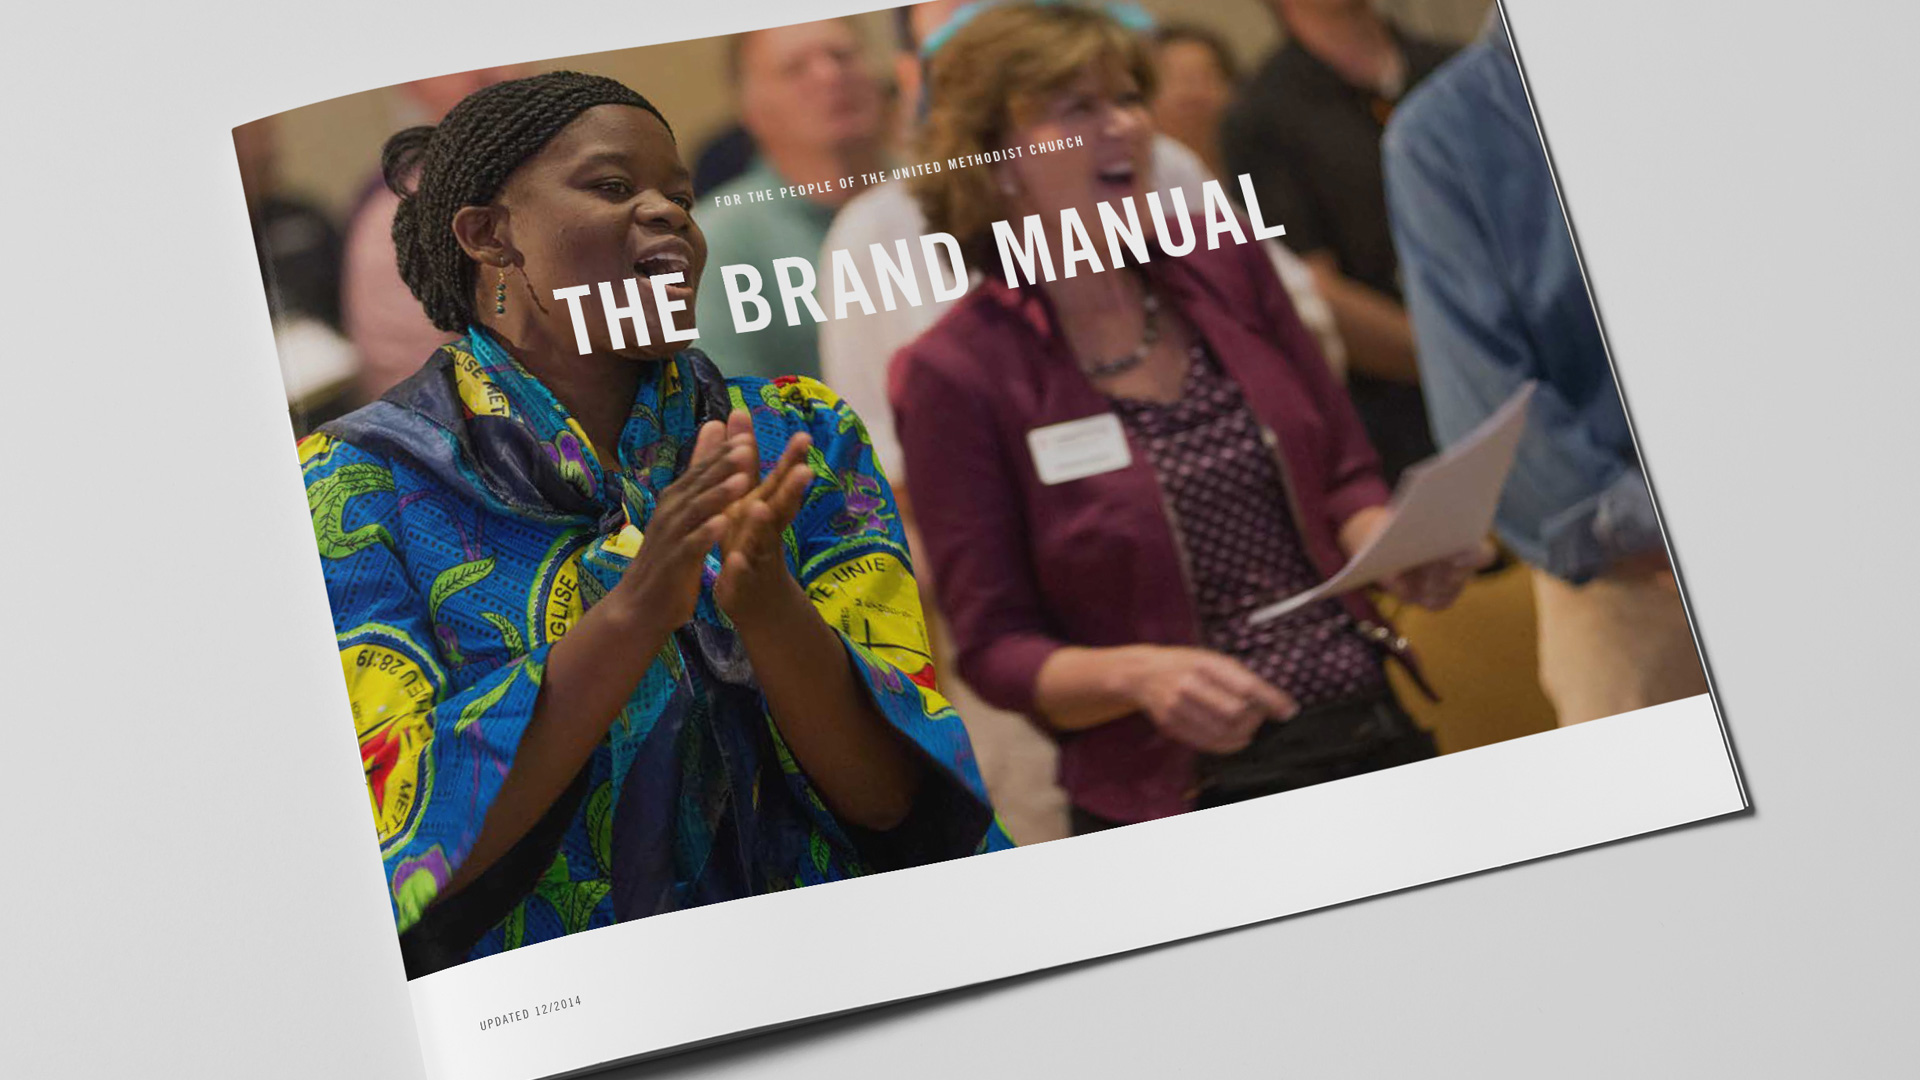 umc-brandmanual-cover.jpg